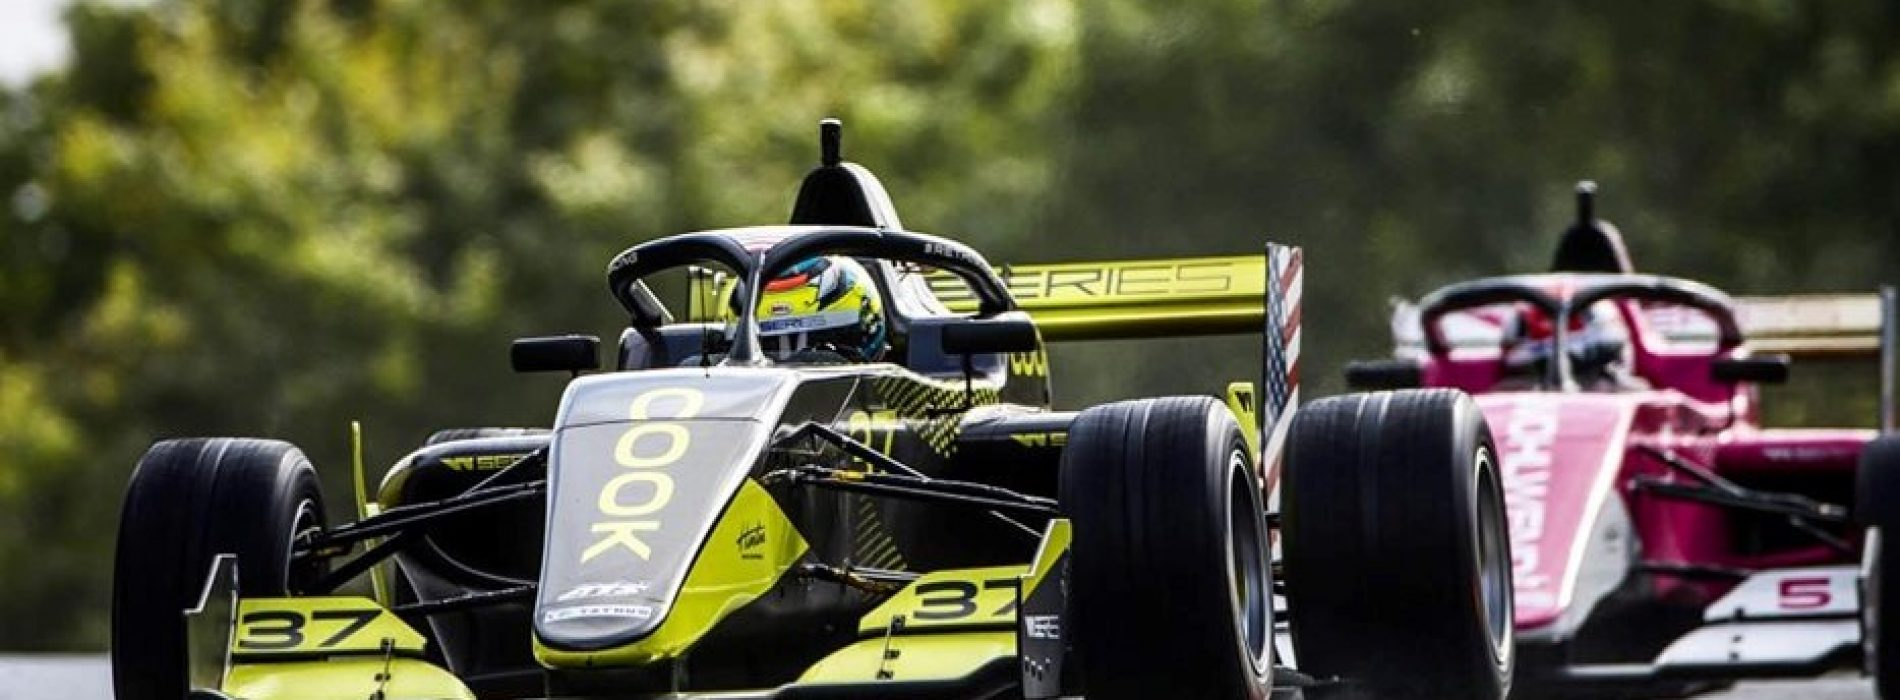 Sabre Cook WSeries 11th Overall and through to 2020